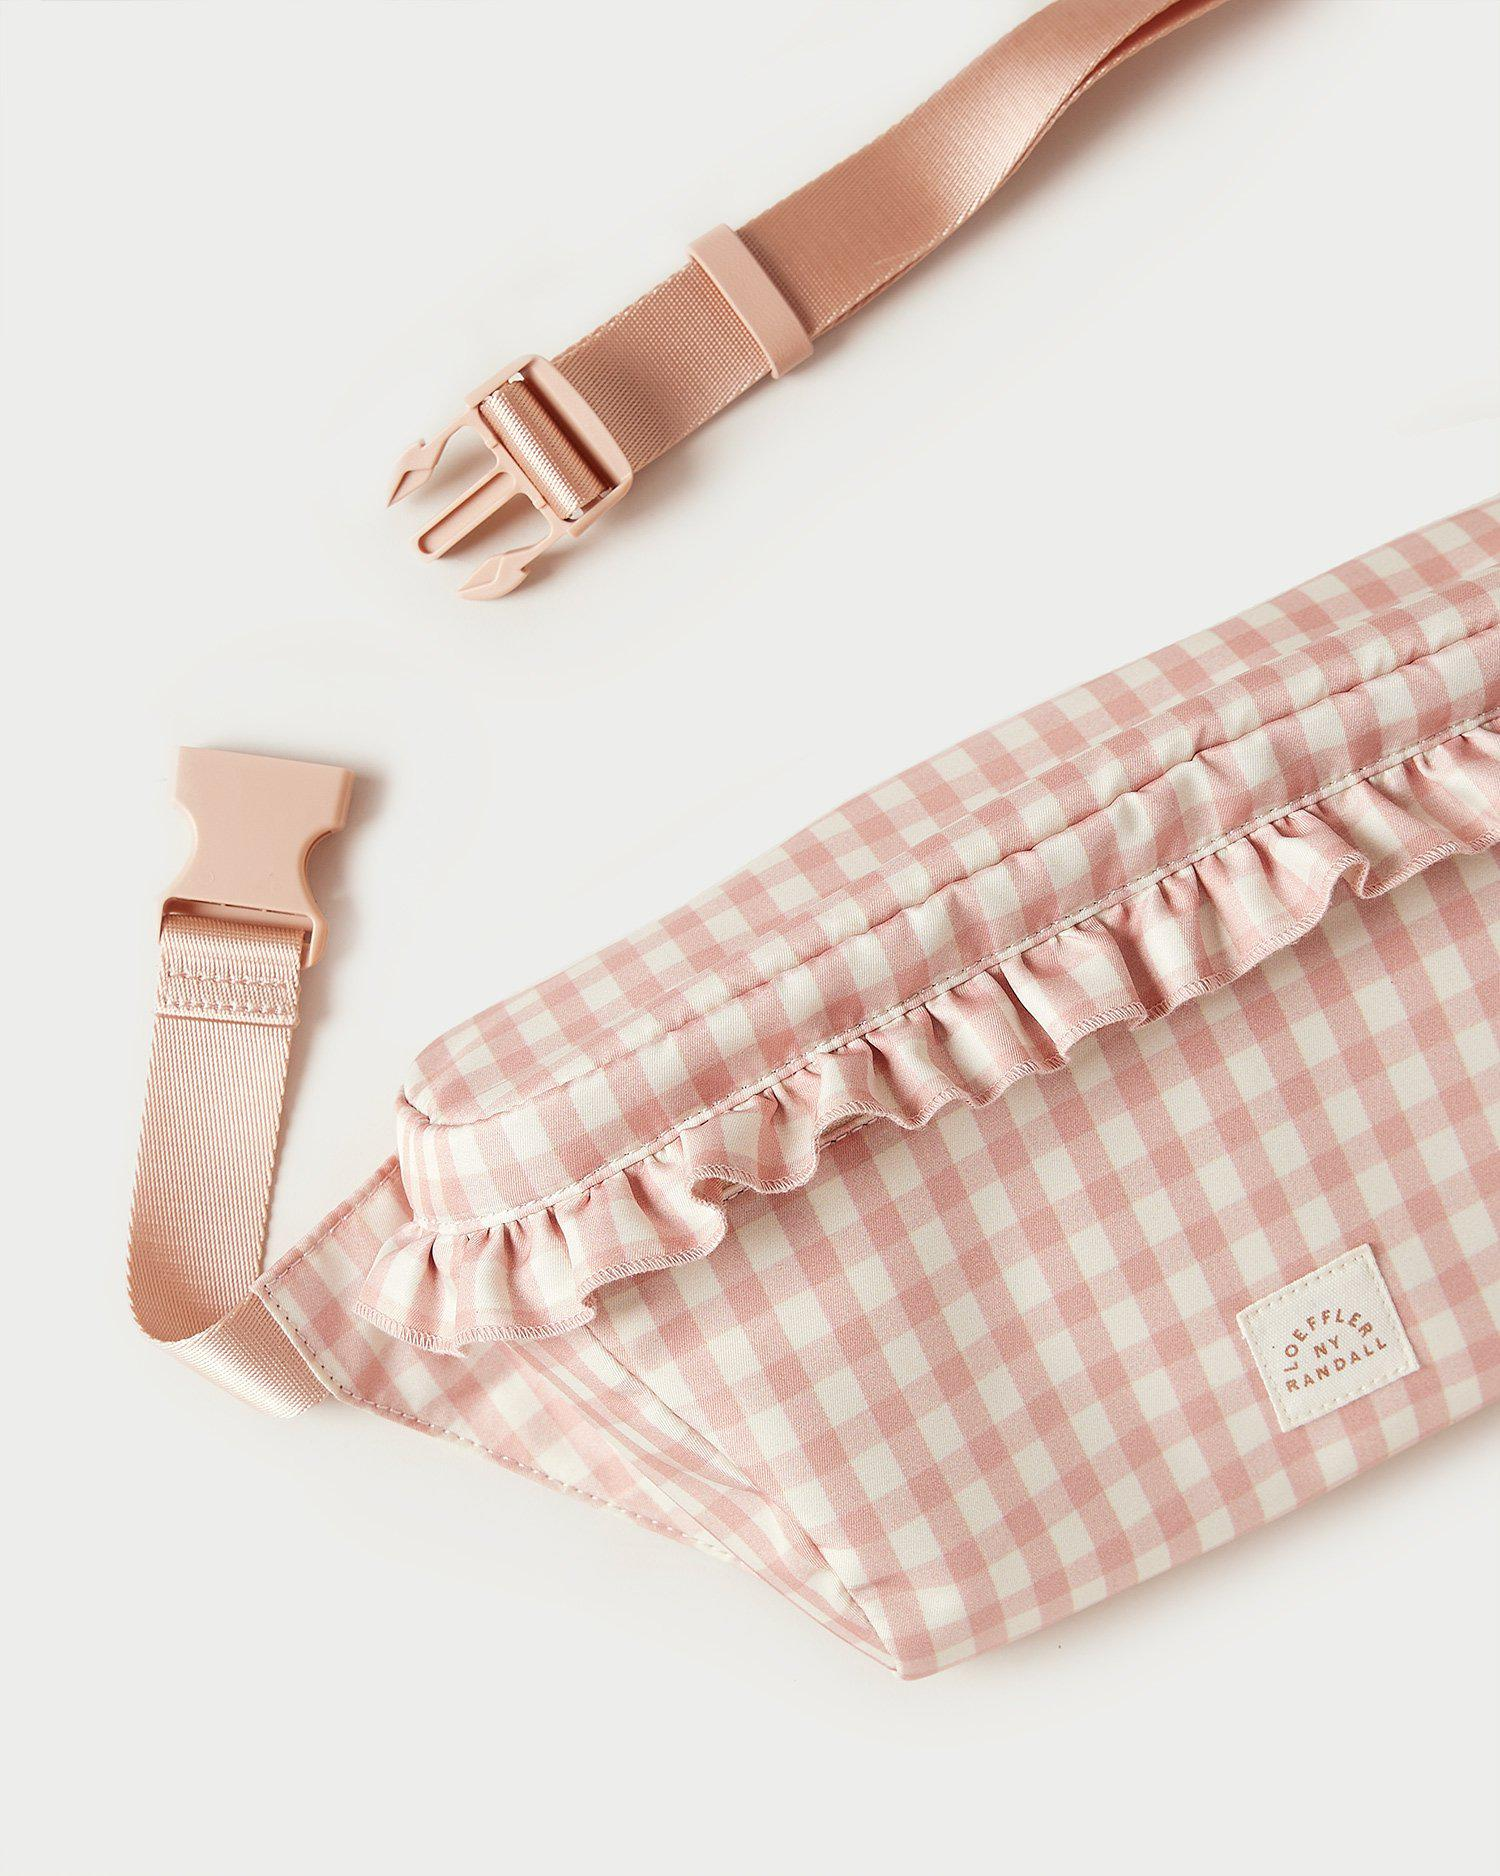 Shiloh Clay Gingham Commuter Pack 3